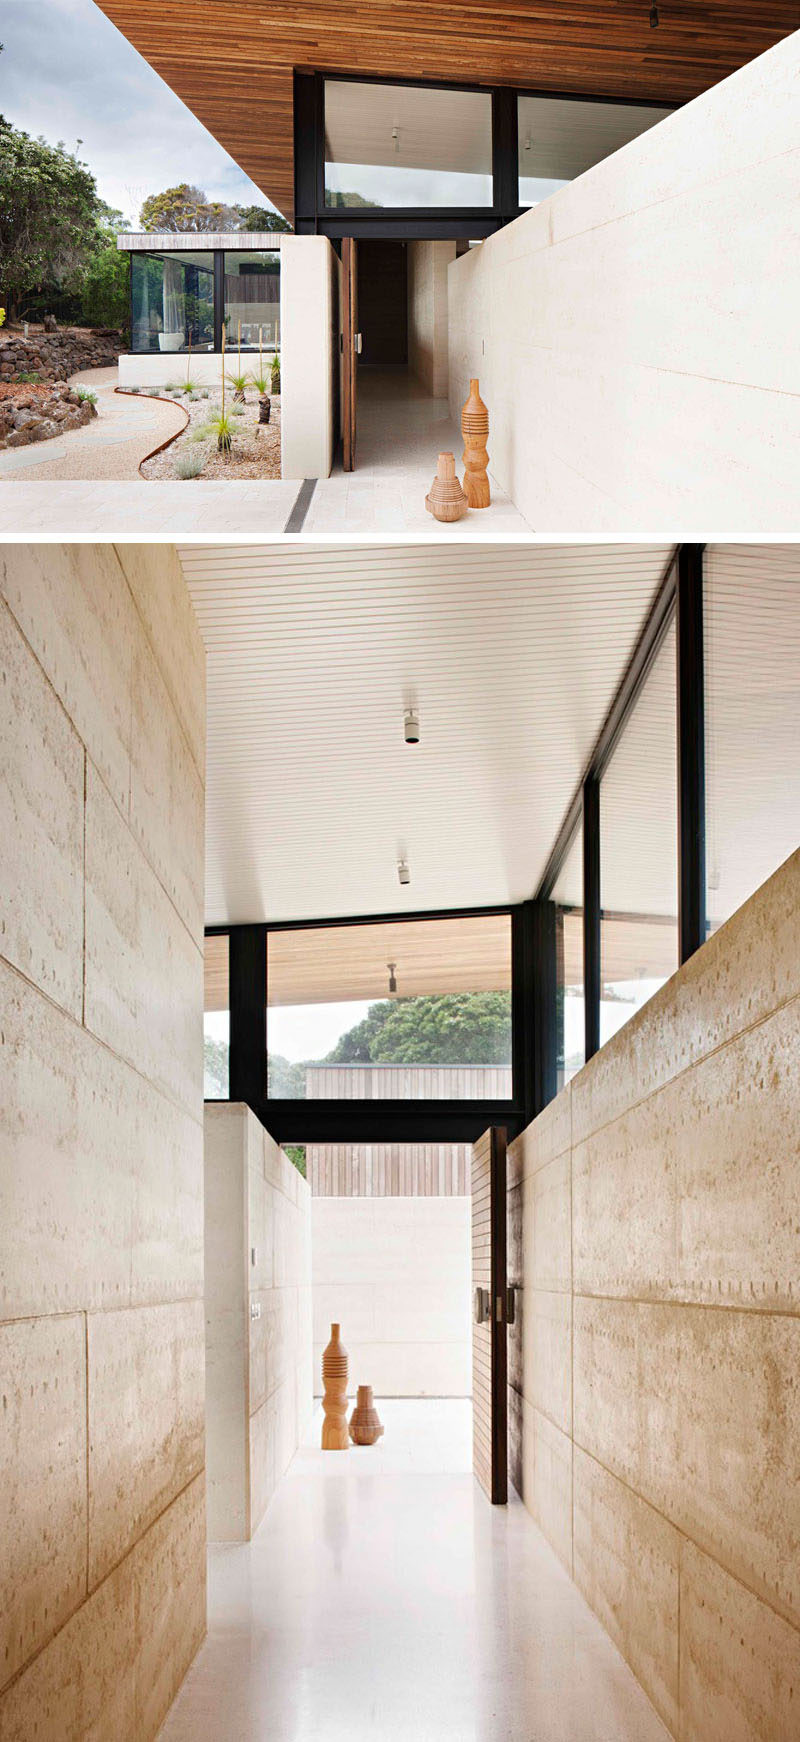 Local Materials And Techniques Were Used When Building The Home, With The  Sand Component Of The Rammed Earth Being Locally Sourced And Built By Local  ...